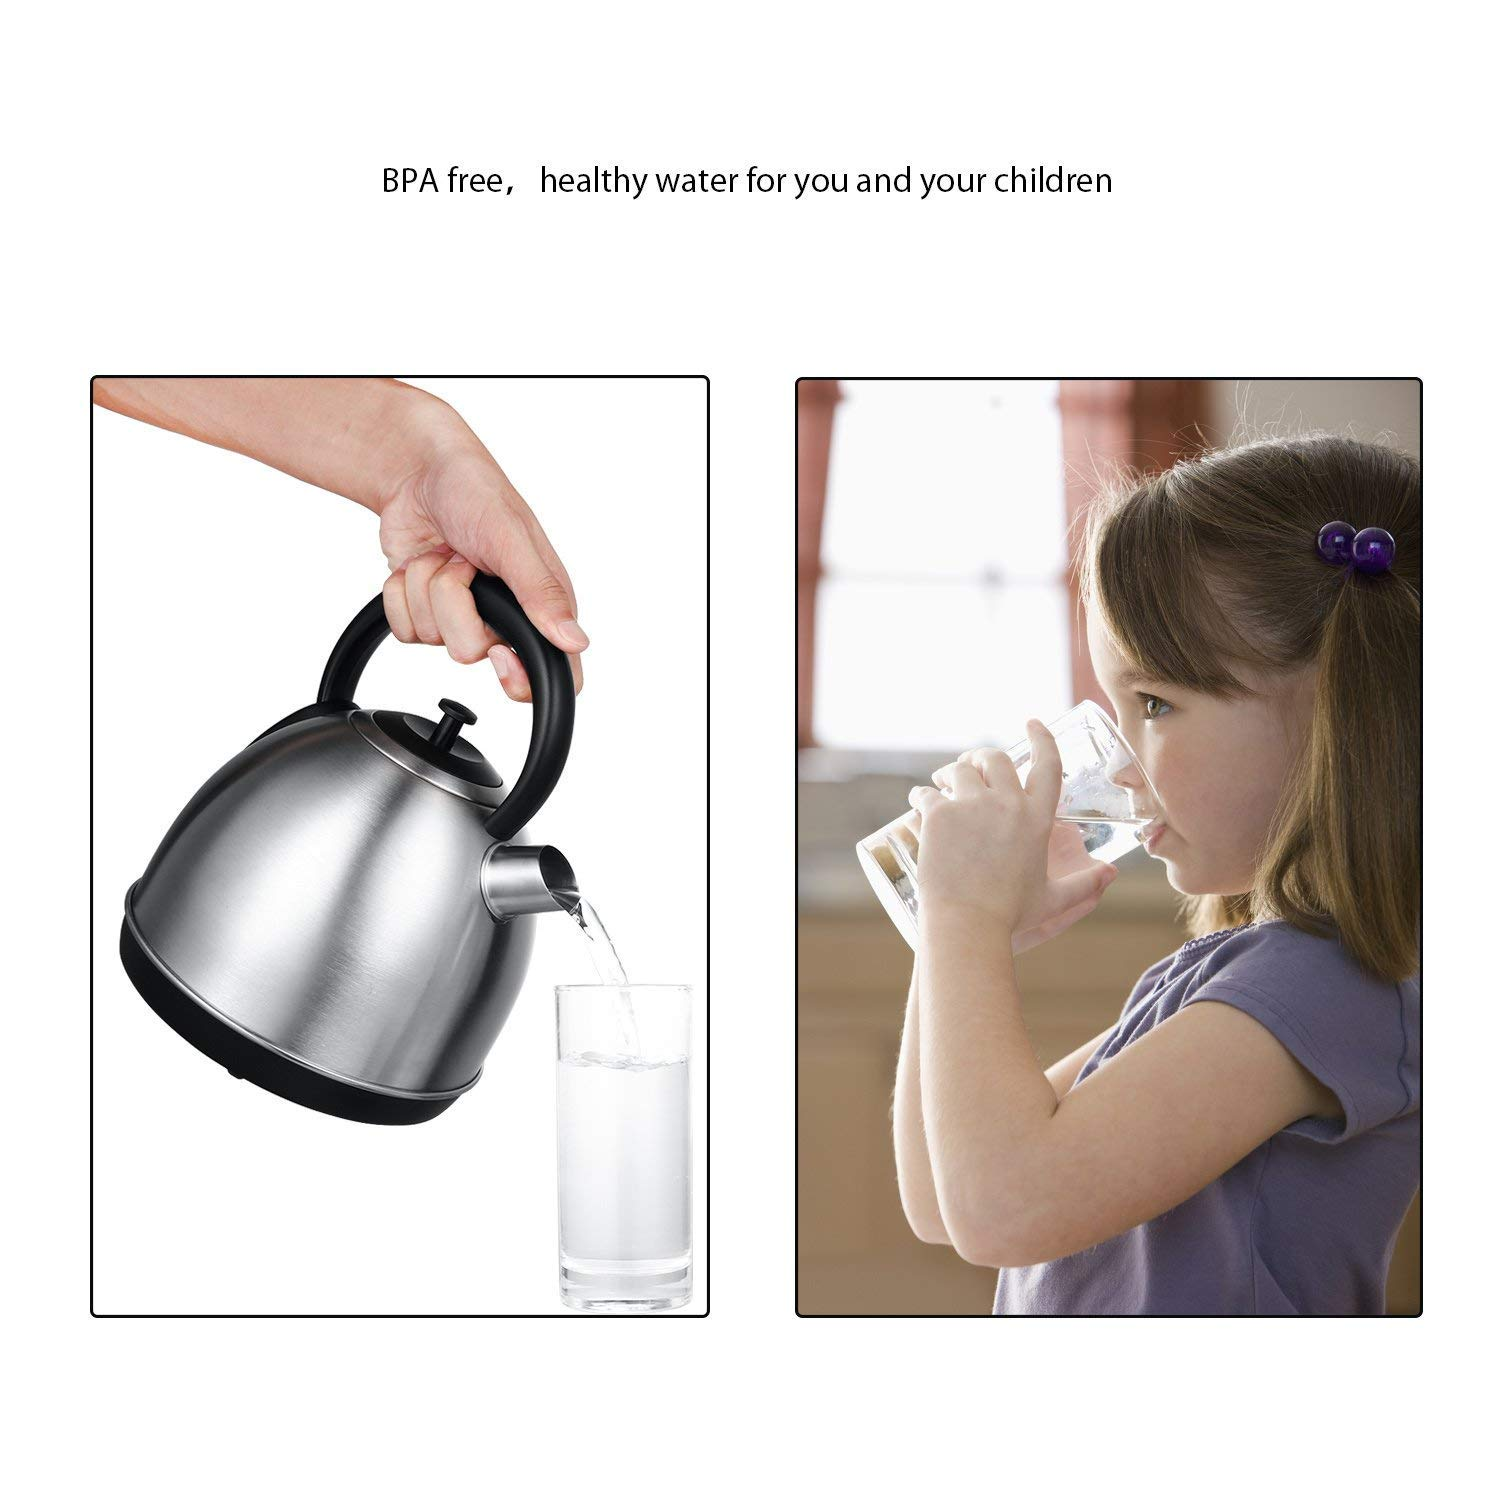 Auto Shut-Off Silver BPA-Free Electric Kettle AICOK 1.7 Litre Retro Dome Kettle 304 Premium Stainless Steel Kettle 3000W Fast Boiling Cordless Kettle with Wide Spout for Easy Filling